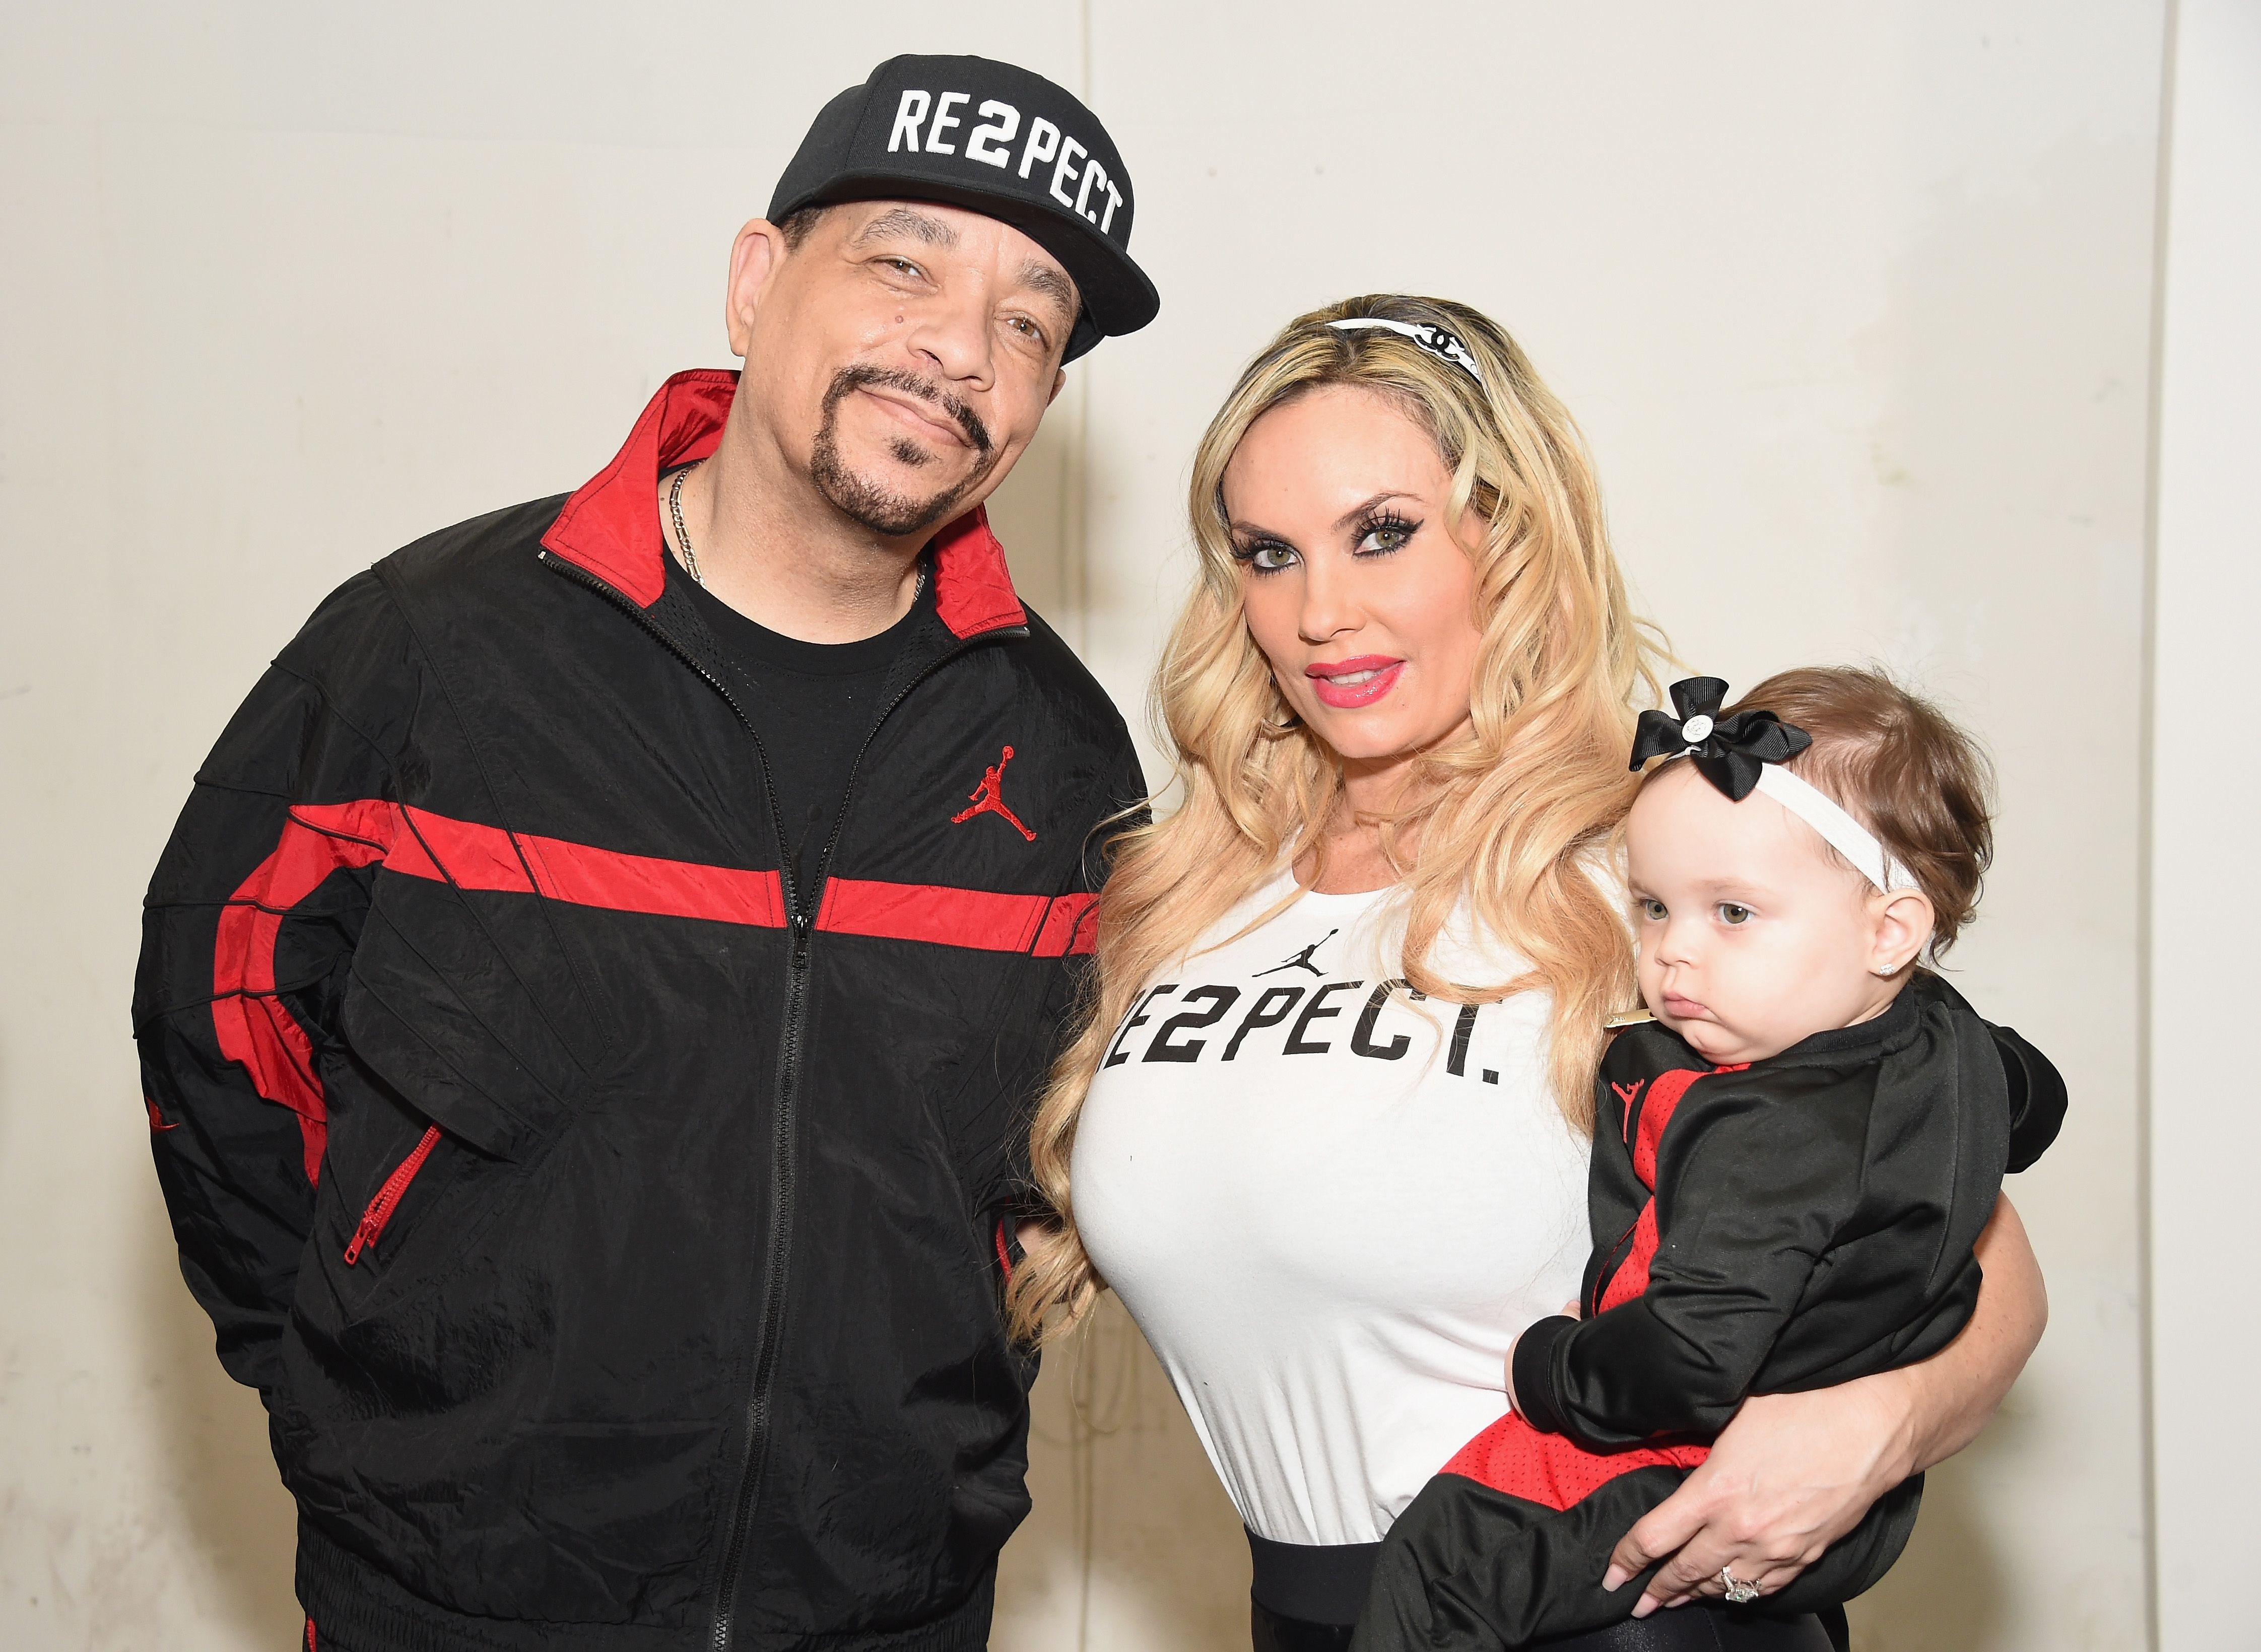 Ice-T, Coco Austin, and Chanel Nicole at the New York Fashion Week on February 15, 2017 | Photo: Getty Images